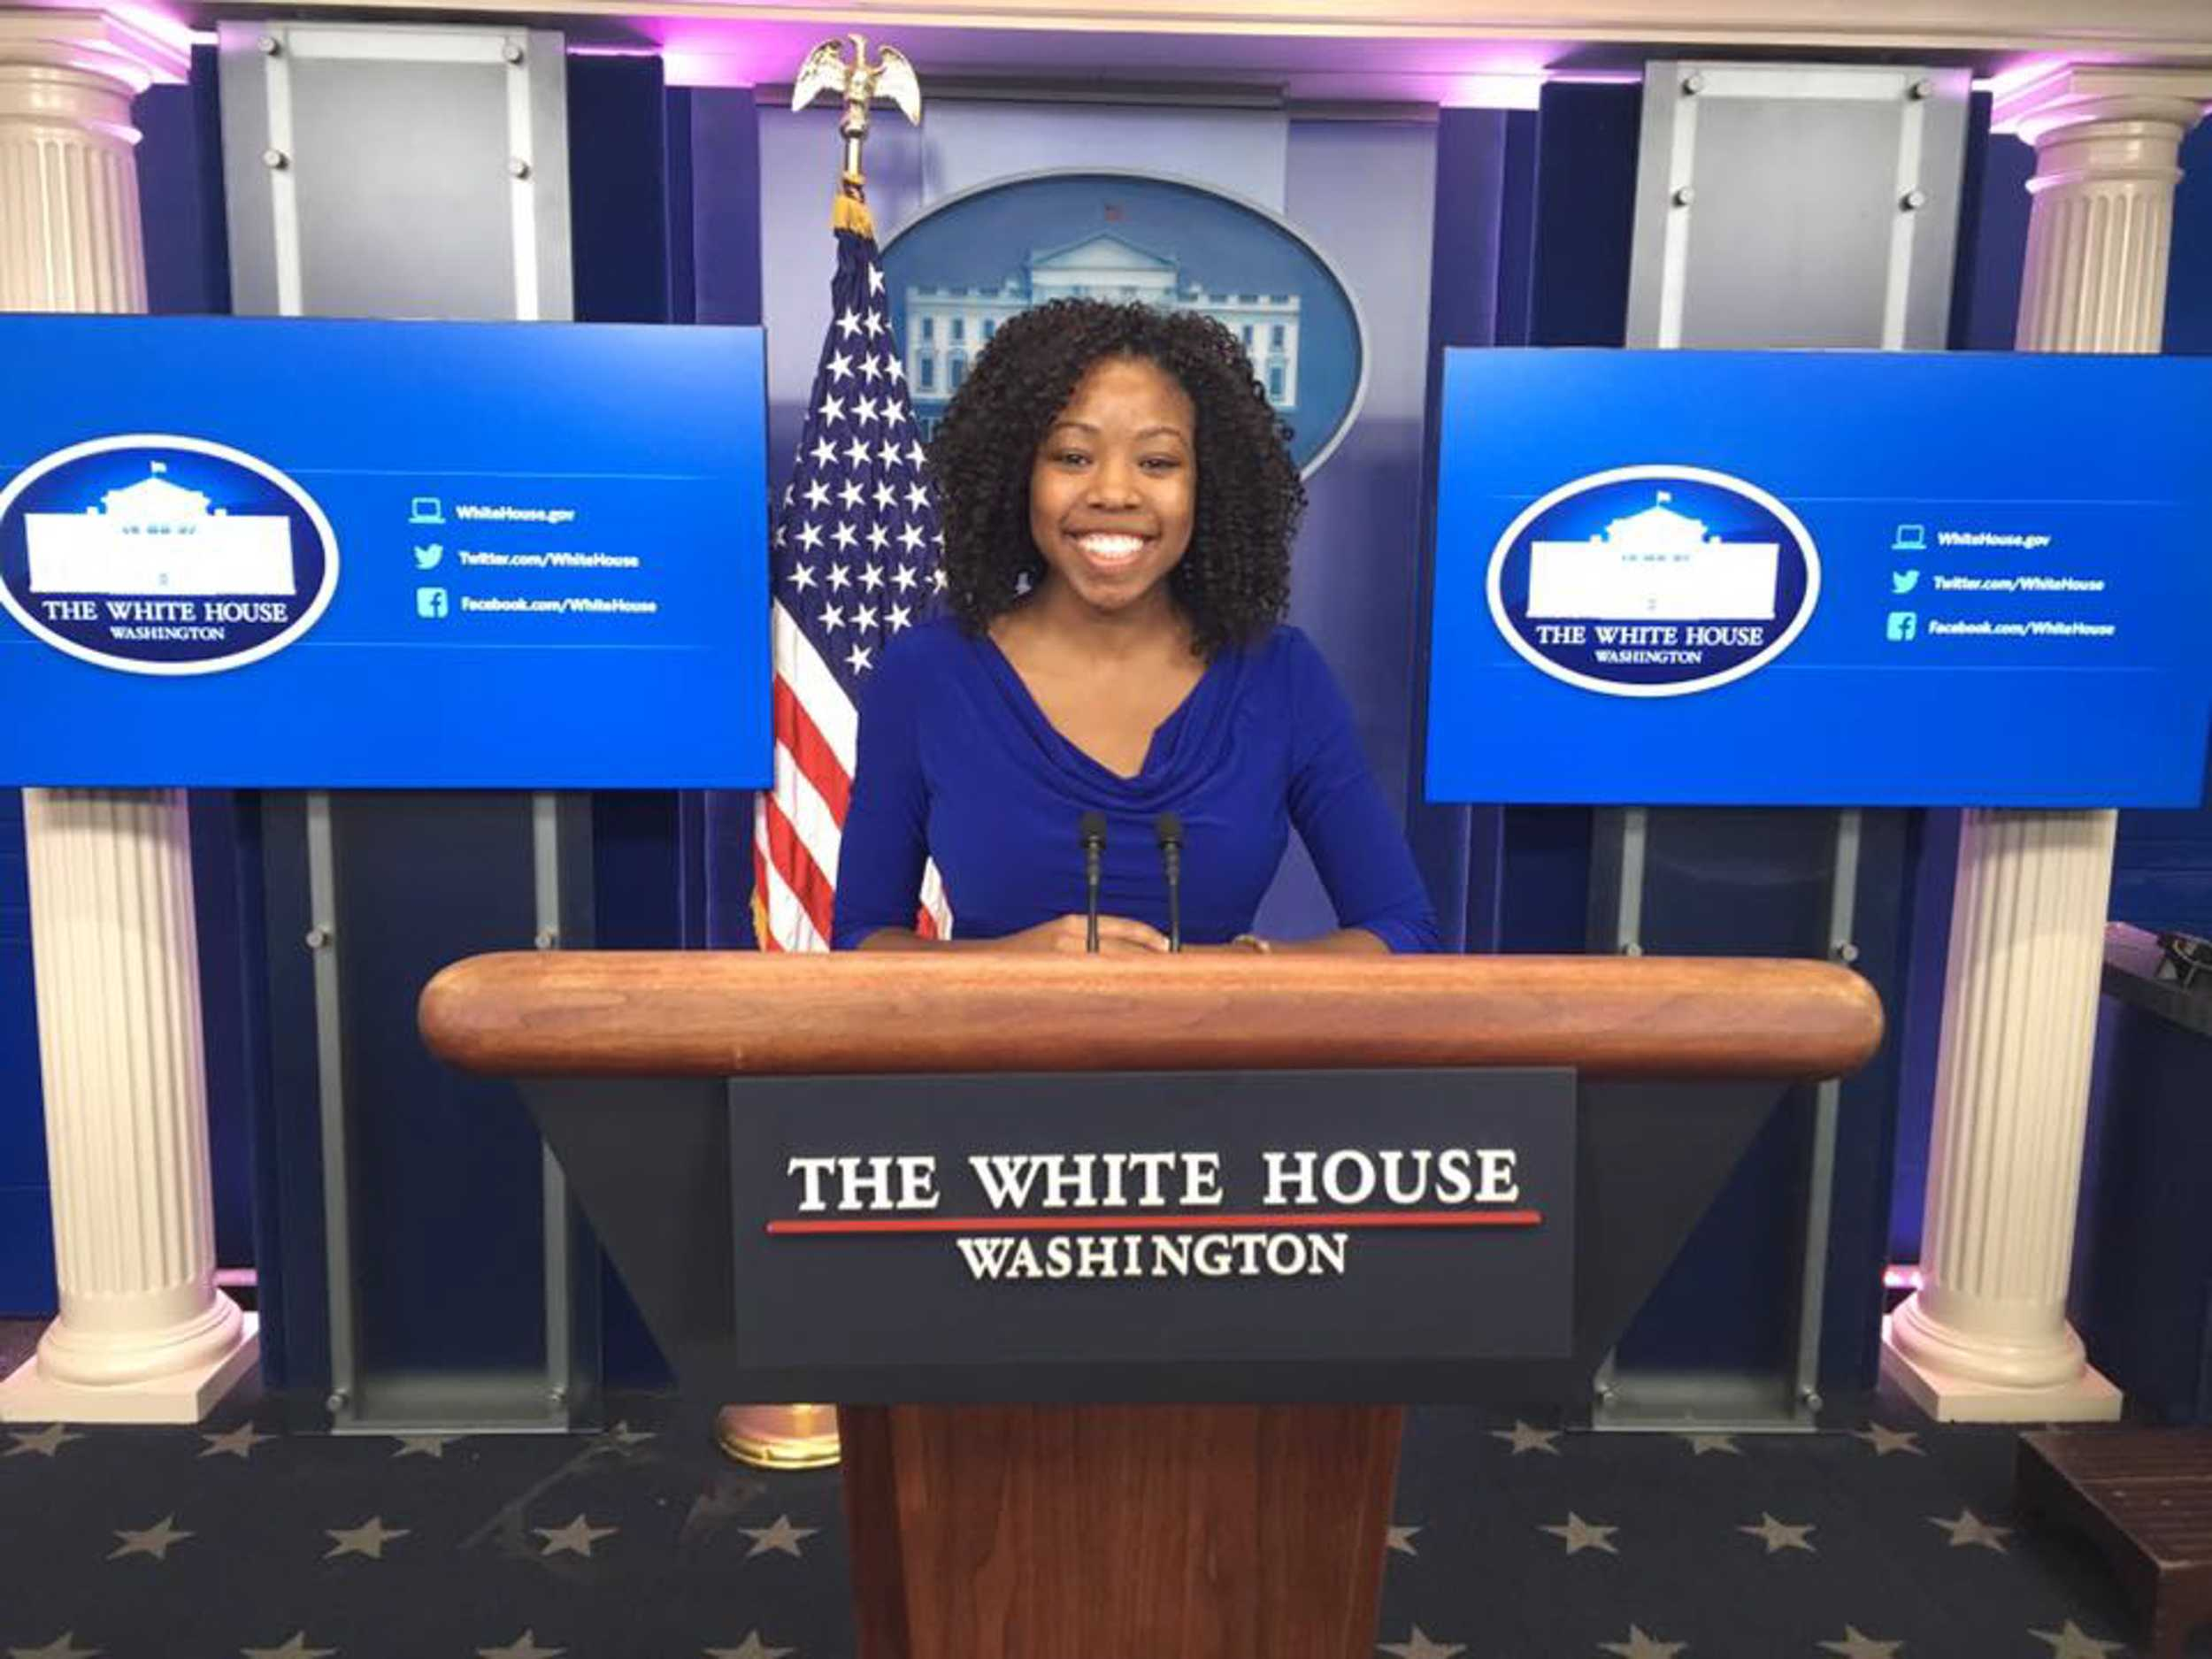 Senior Kiah Duggins poses in the White House briefing room, where then-press secretary Josh Earnest gave the daily press briefings to news media. Duggins served as a policy intern for first lady Michelle Obama's office during the fall semester.